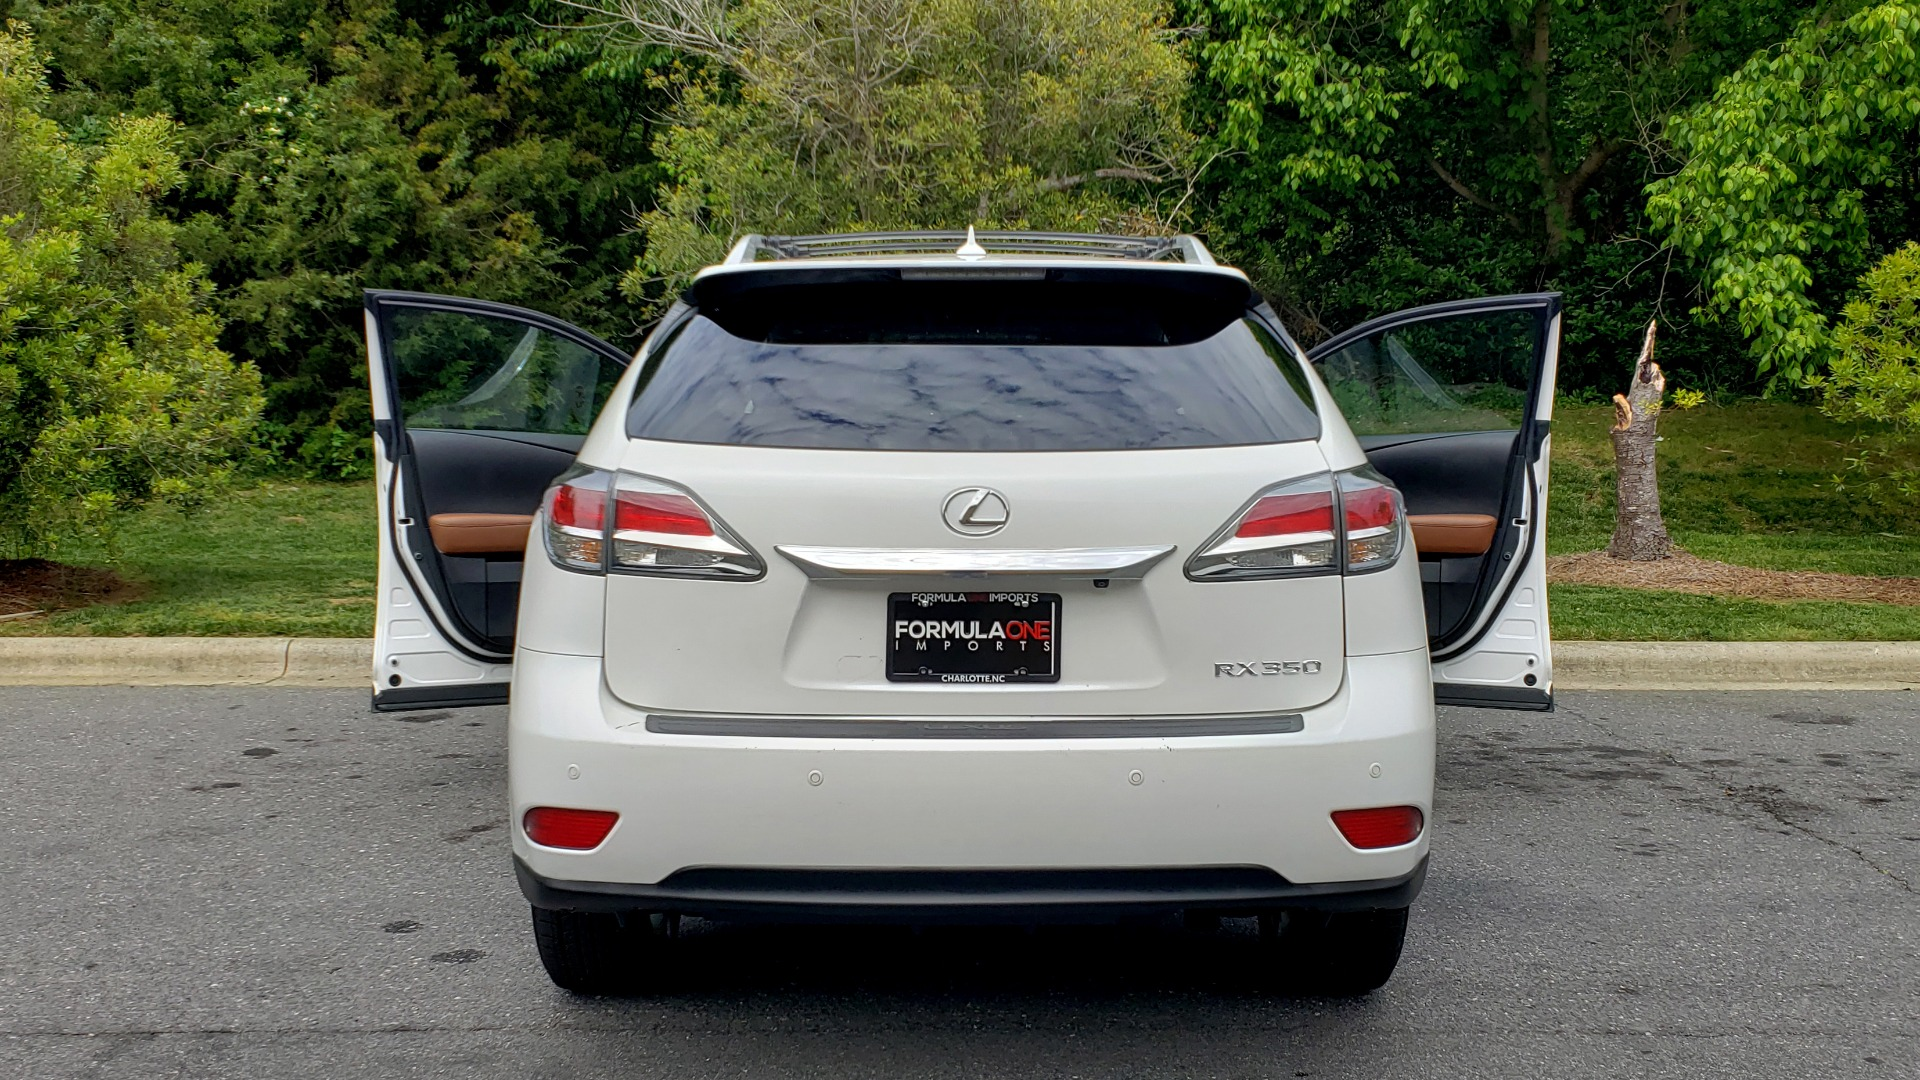 Used 2013 Lexus RX 350 PREMIUM PKG / SUNROOF / BSM / PARK ASST / REARVIEW for sale Sold at Formula Imports in Charlotte NC 28227 27